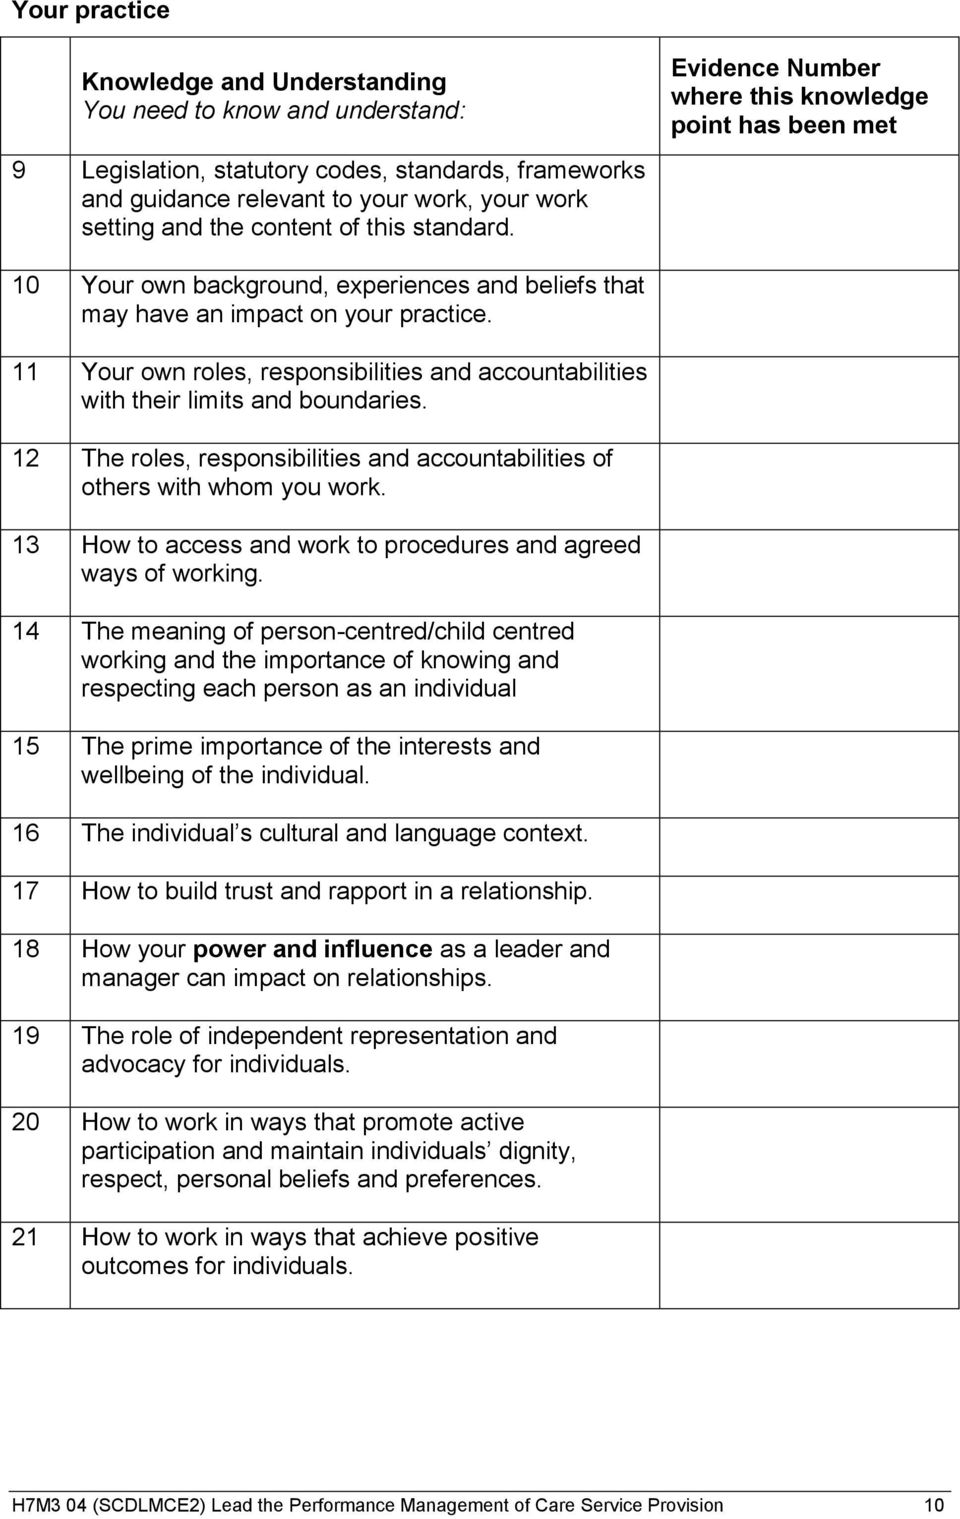 11 Your own roles, responsibilities and accountabilities with their limits and boundaries. 12 The roles, responsibilities and accountabilities of others with whom you work.